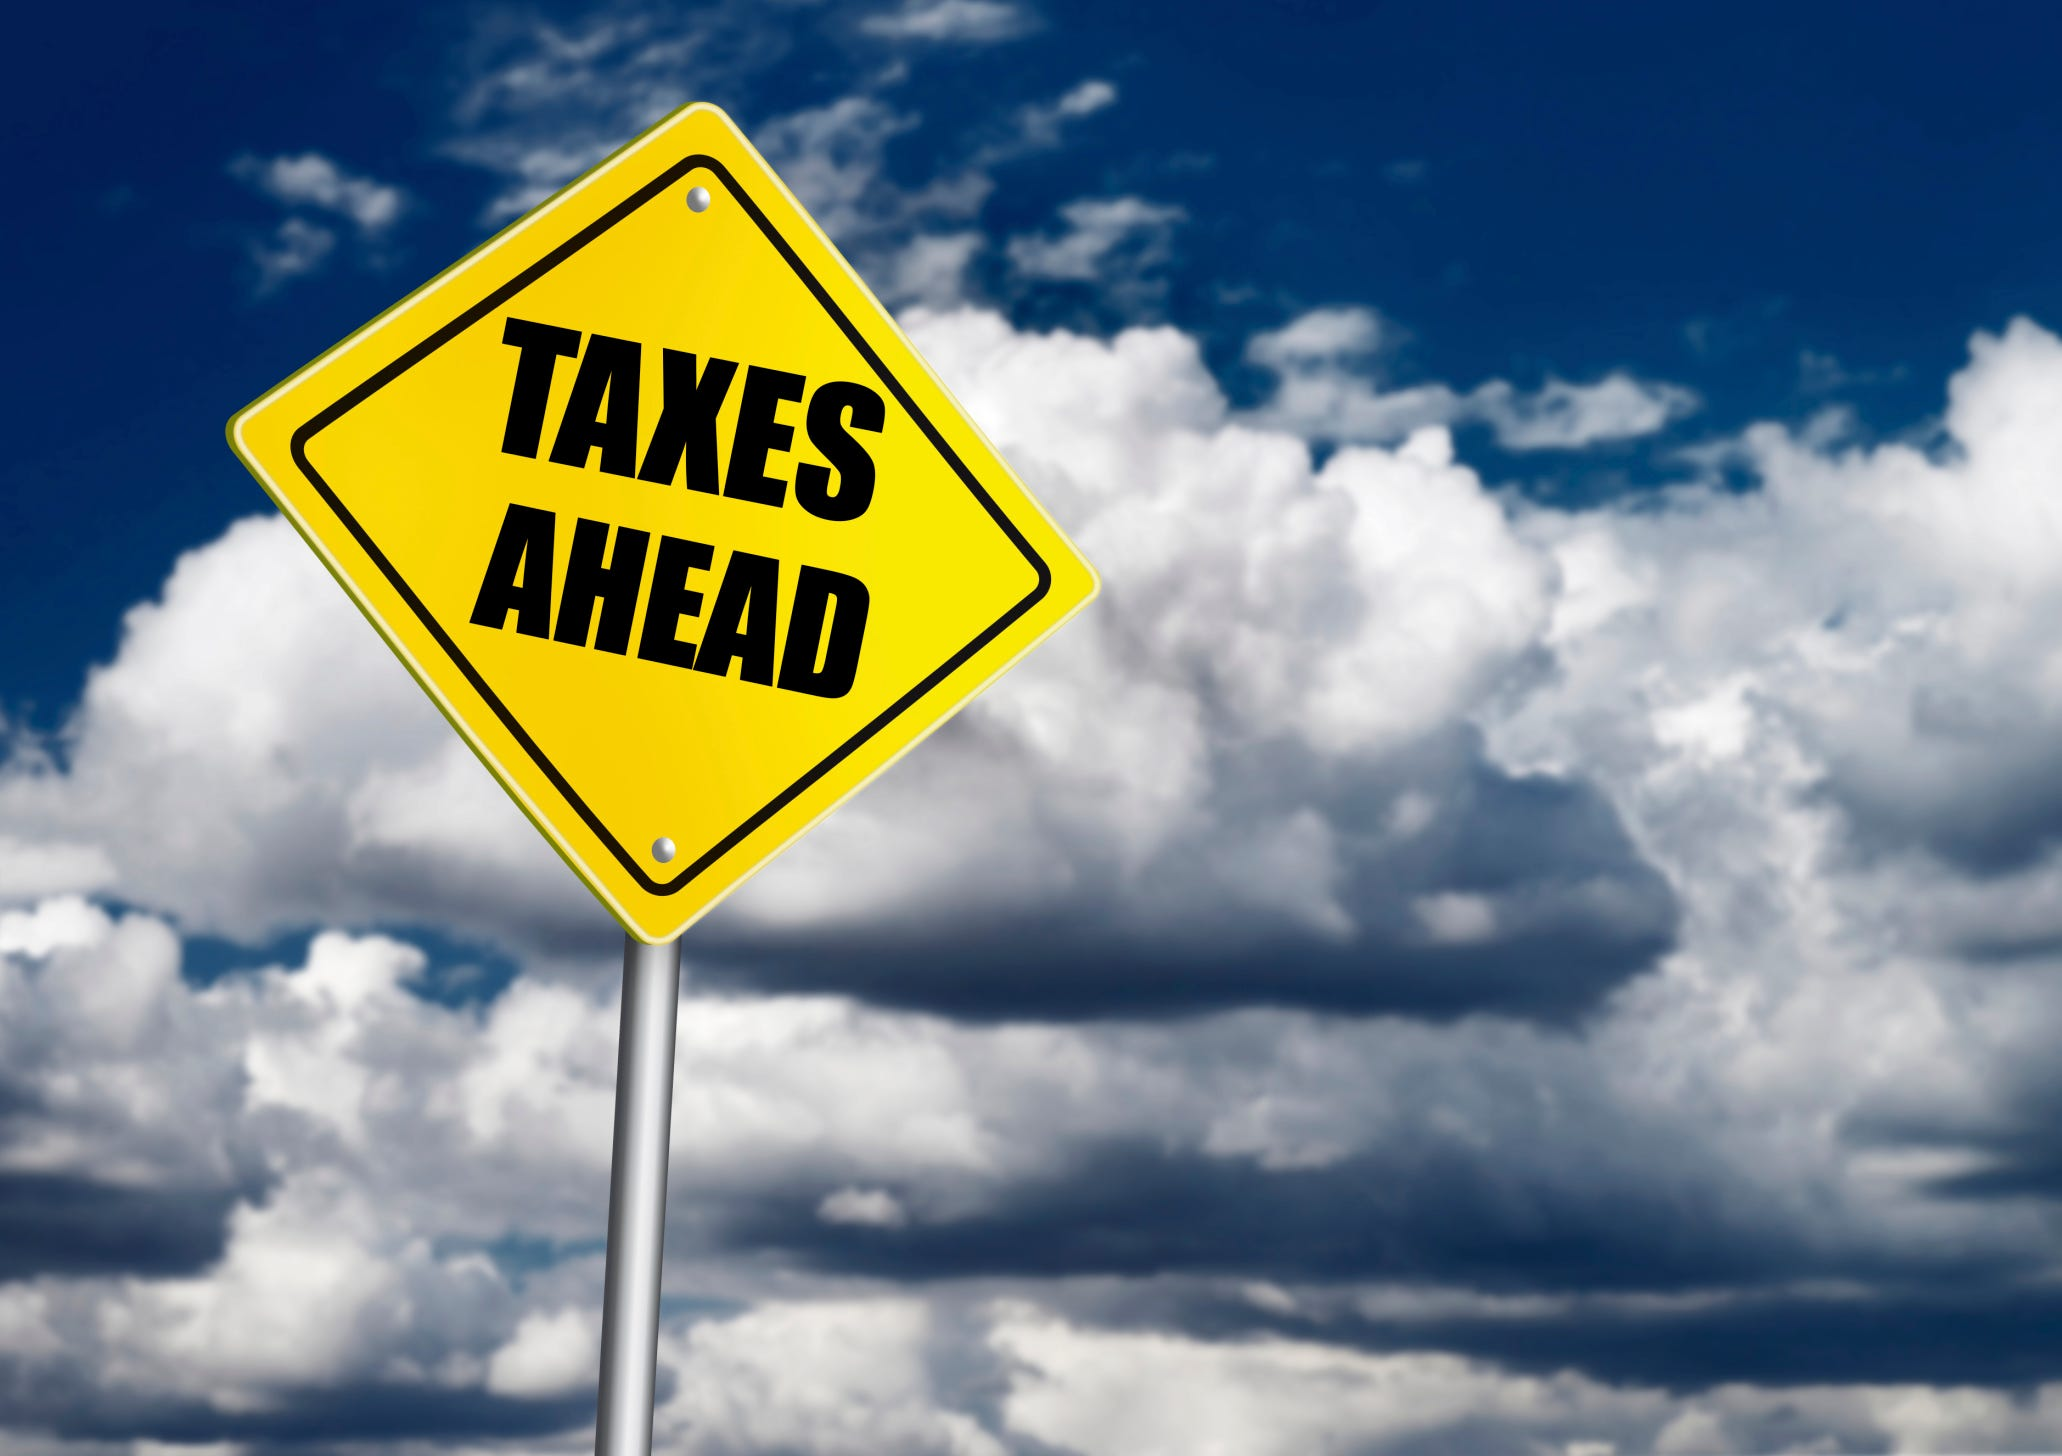 10 biggest income tax changes to plan for in 2016